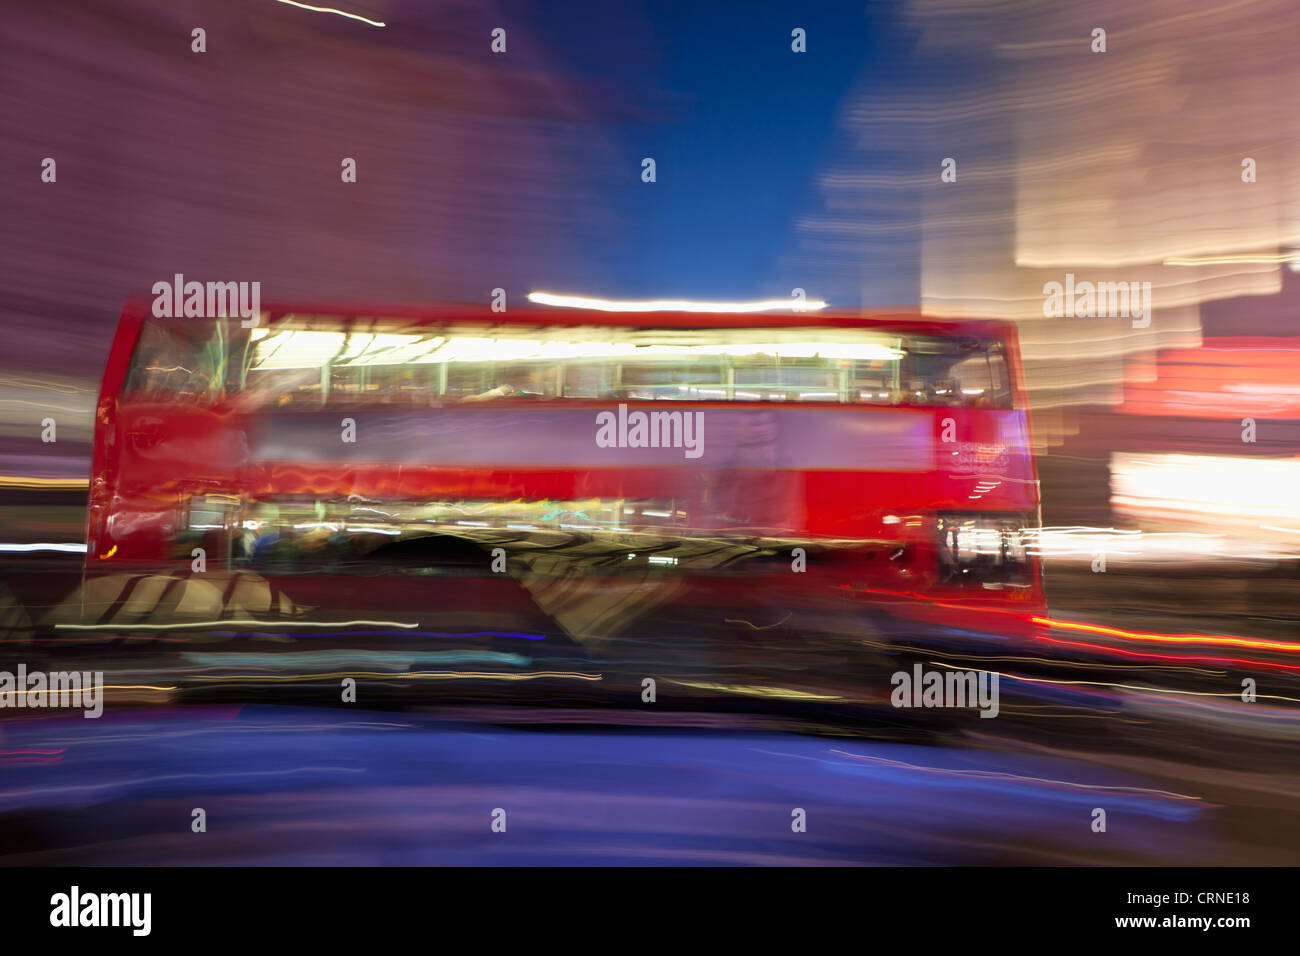 Blurry red bus, London, England - Stock Image